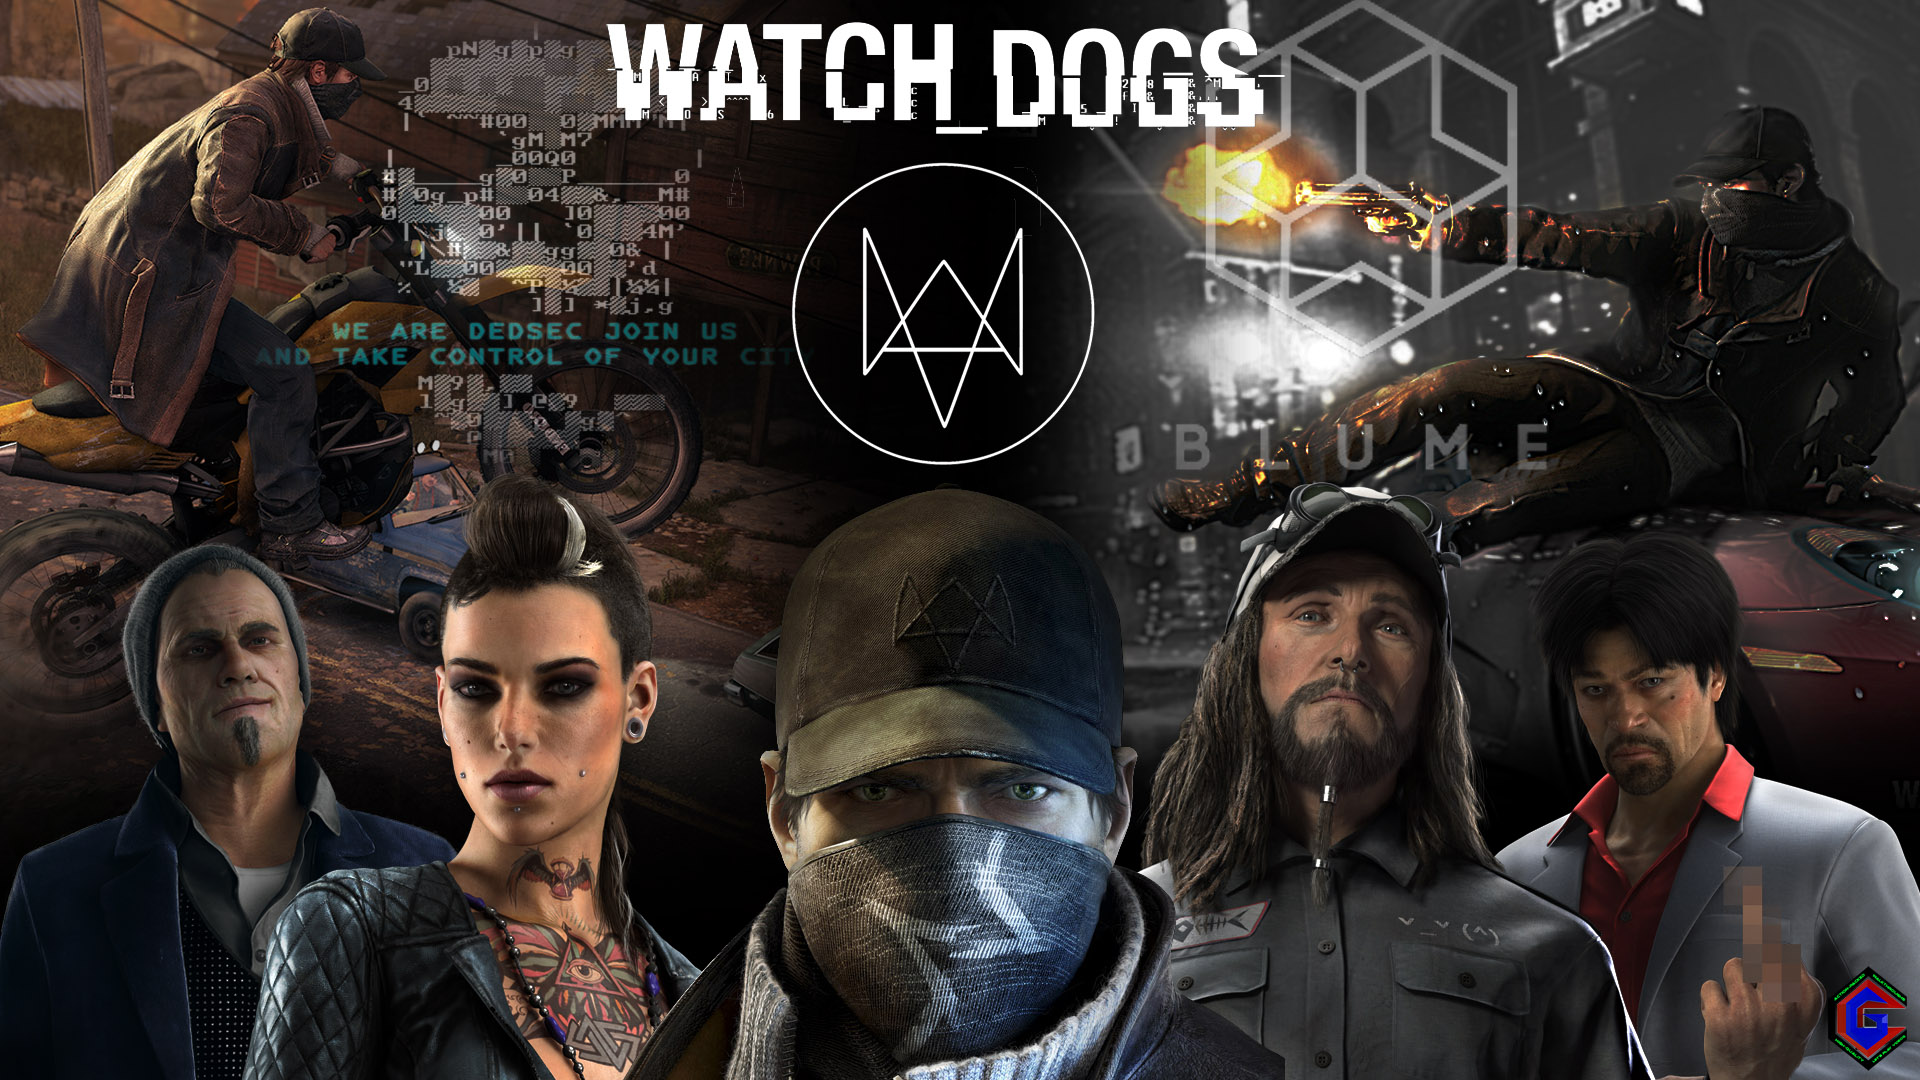 Watch_Dogs Exclusive Wallpaper